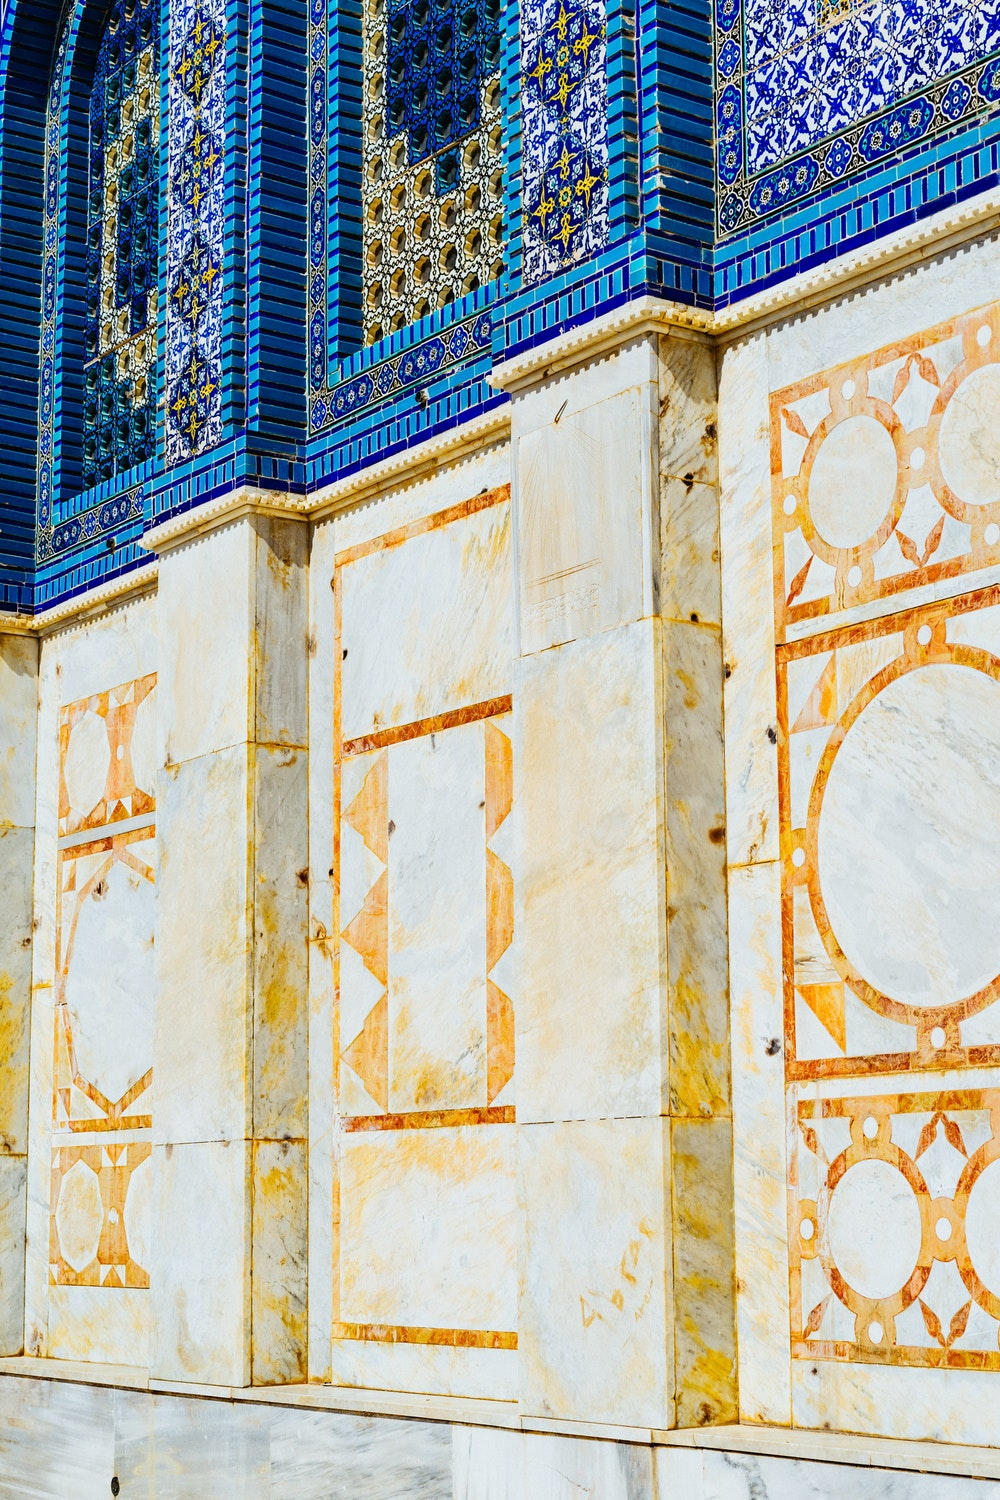 Artistic detail in the walls of the Dome of the Rock in Jerusalem, Israel